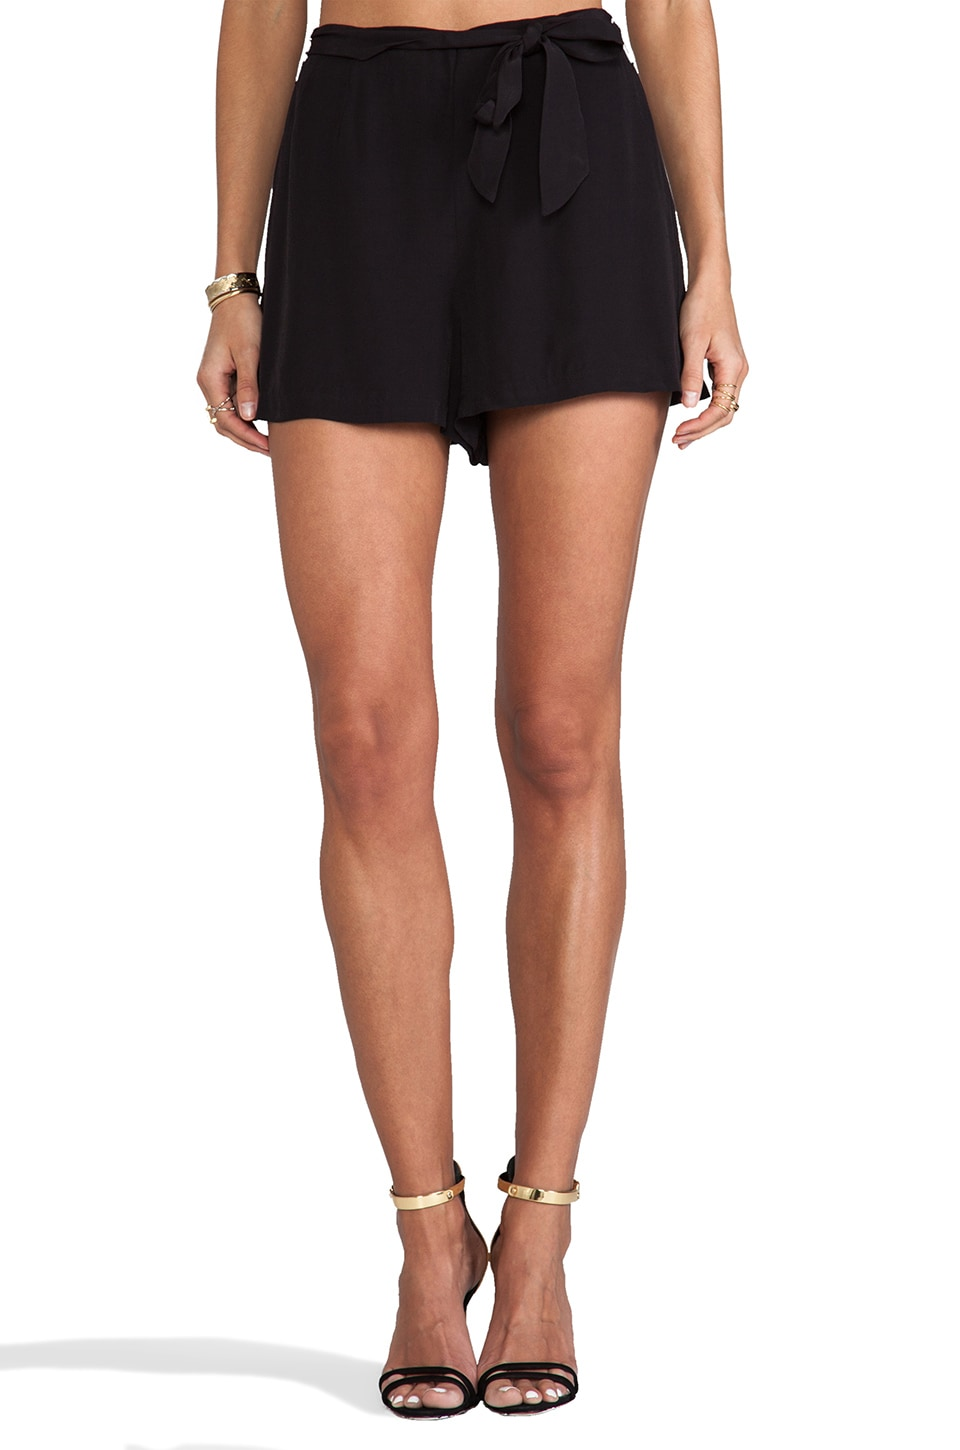 BB Dakota Nayan High Waisted Shorts in Black